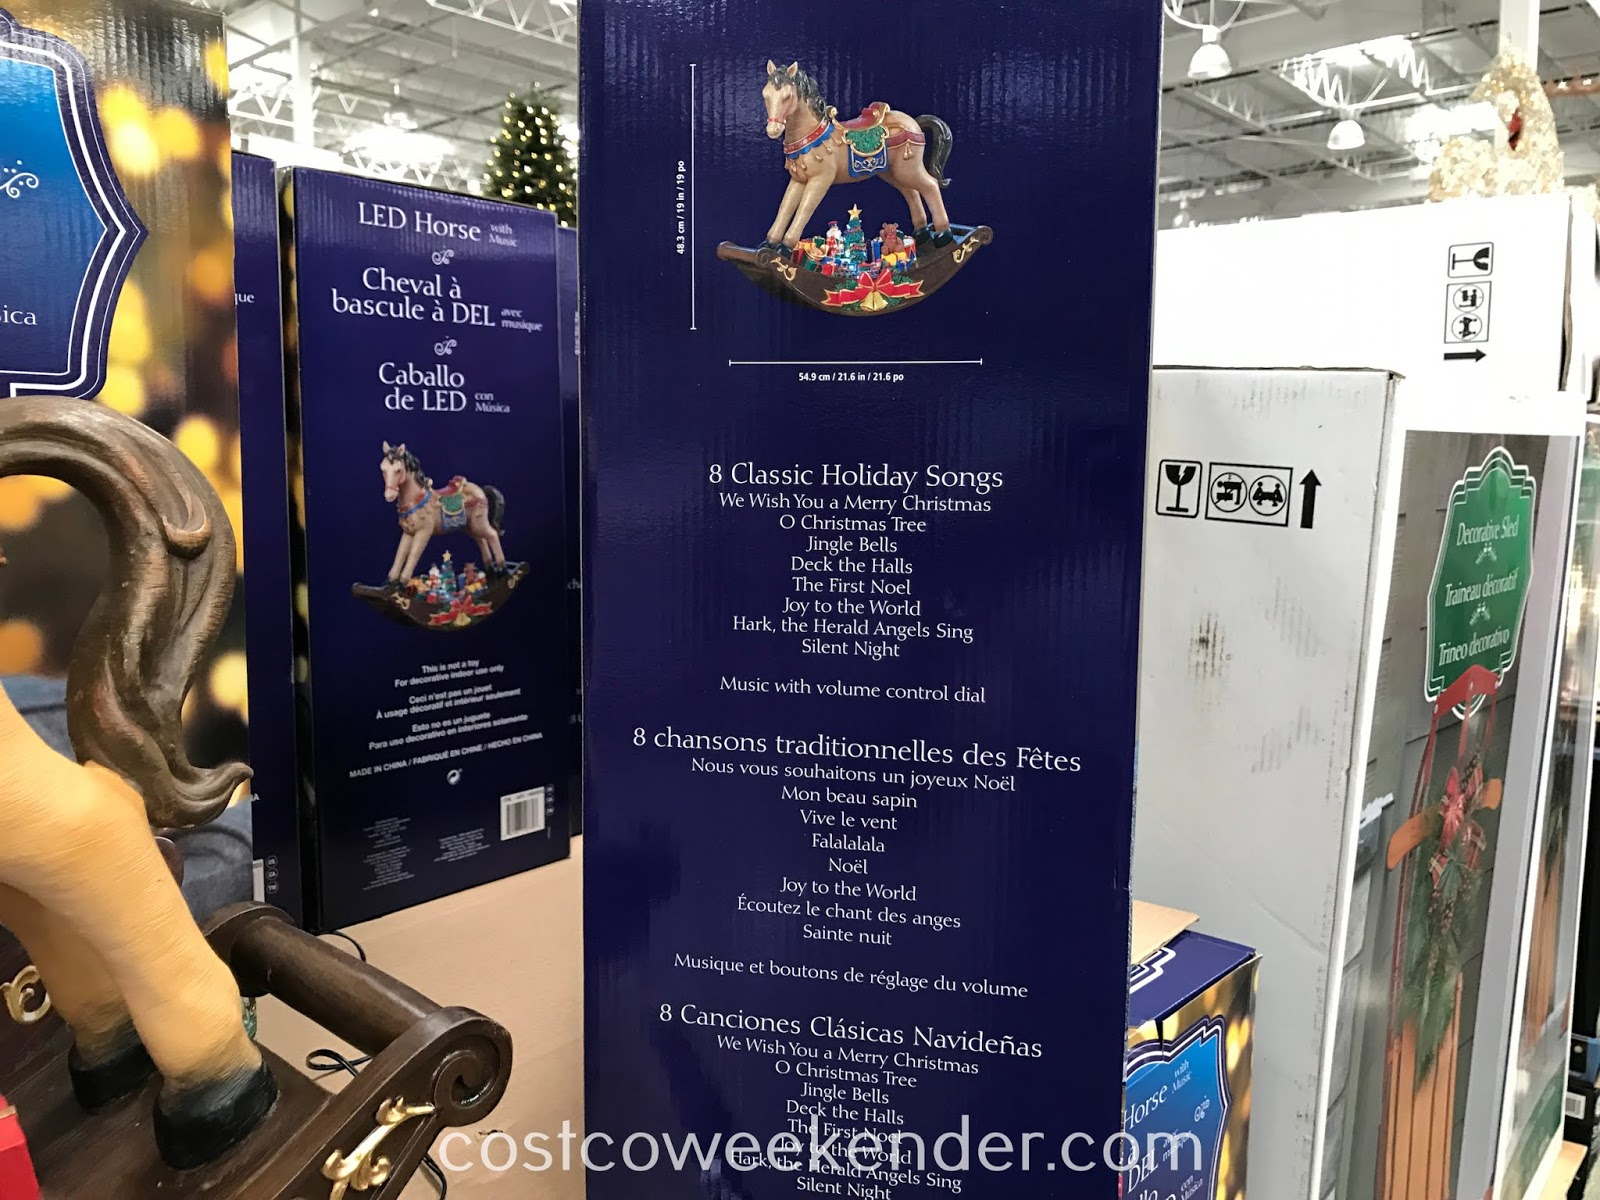 Costco 1900203 - LED Table Top Horse with Music: great for the holidays